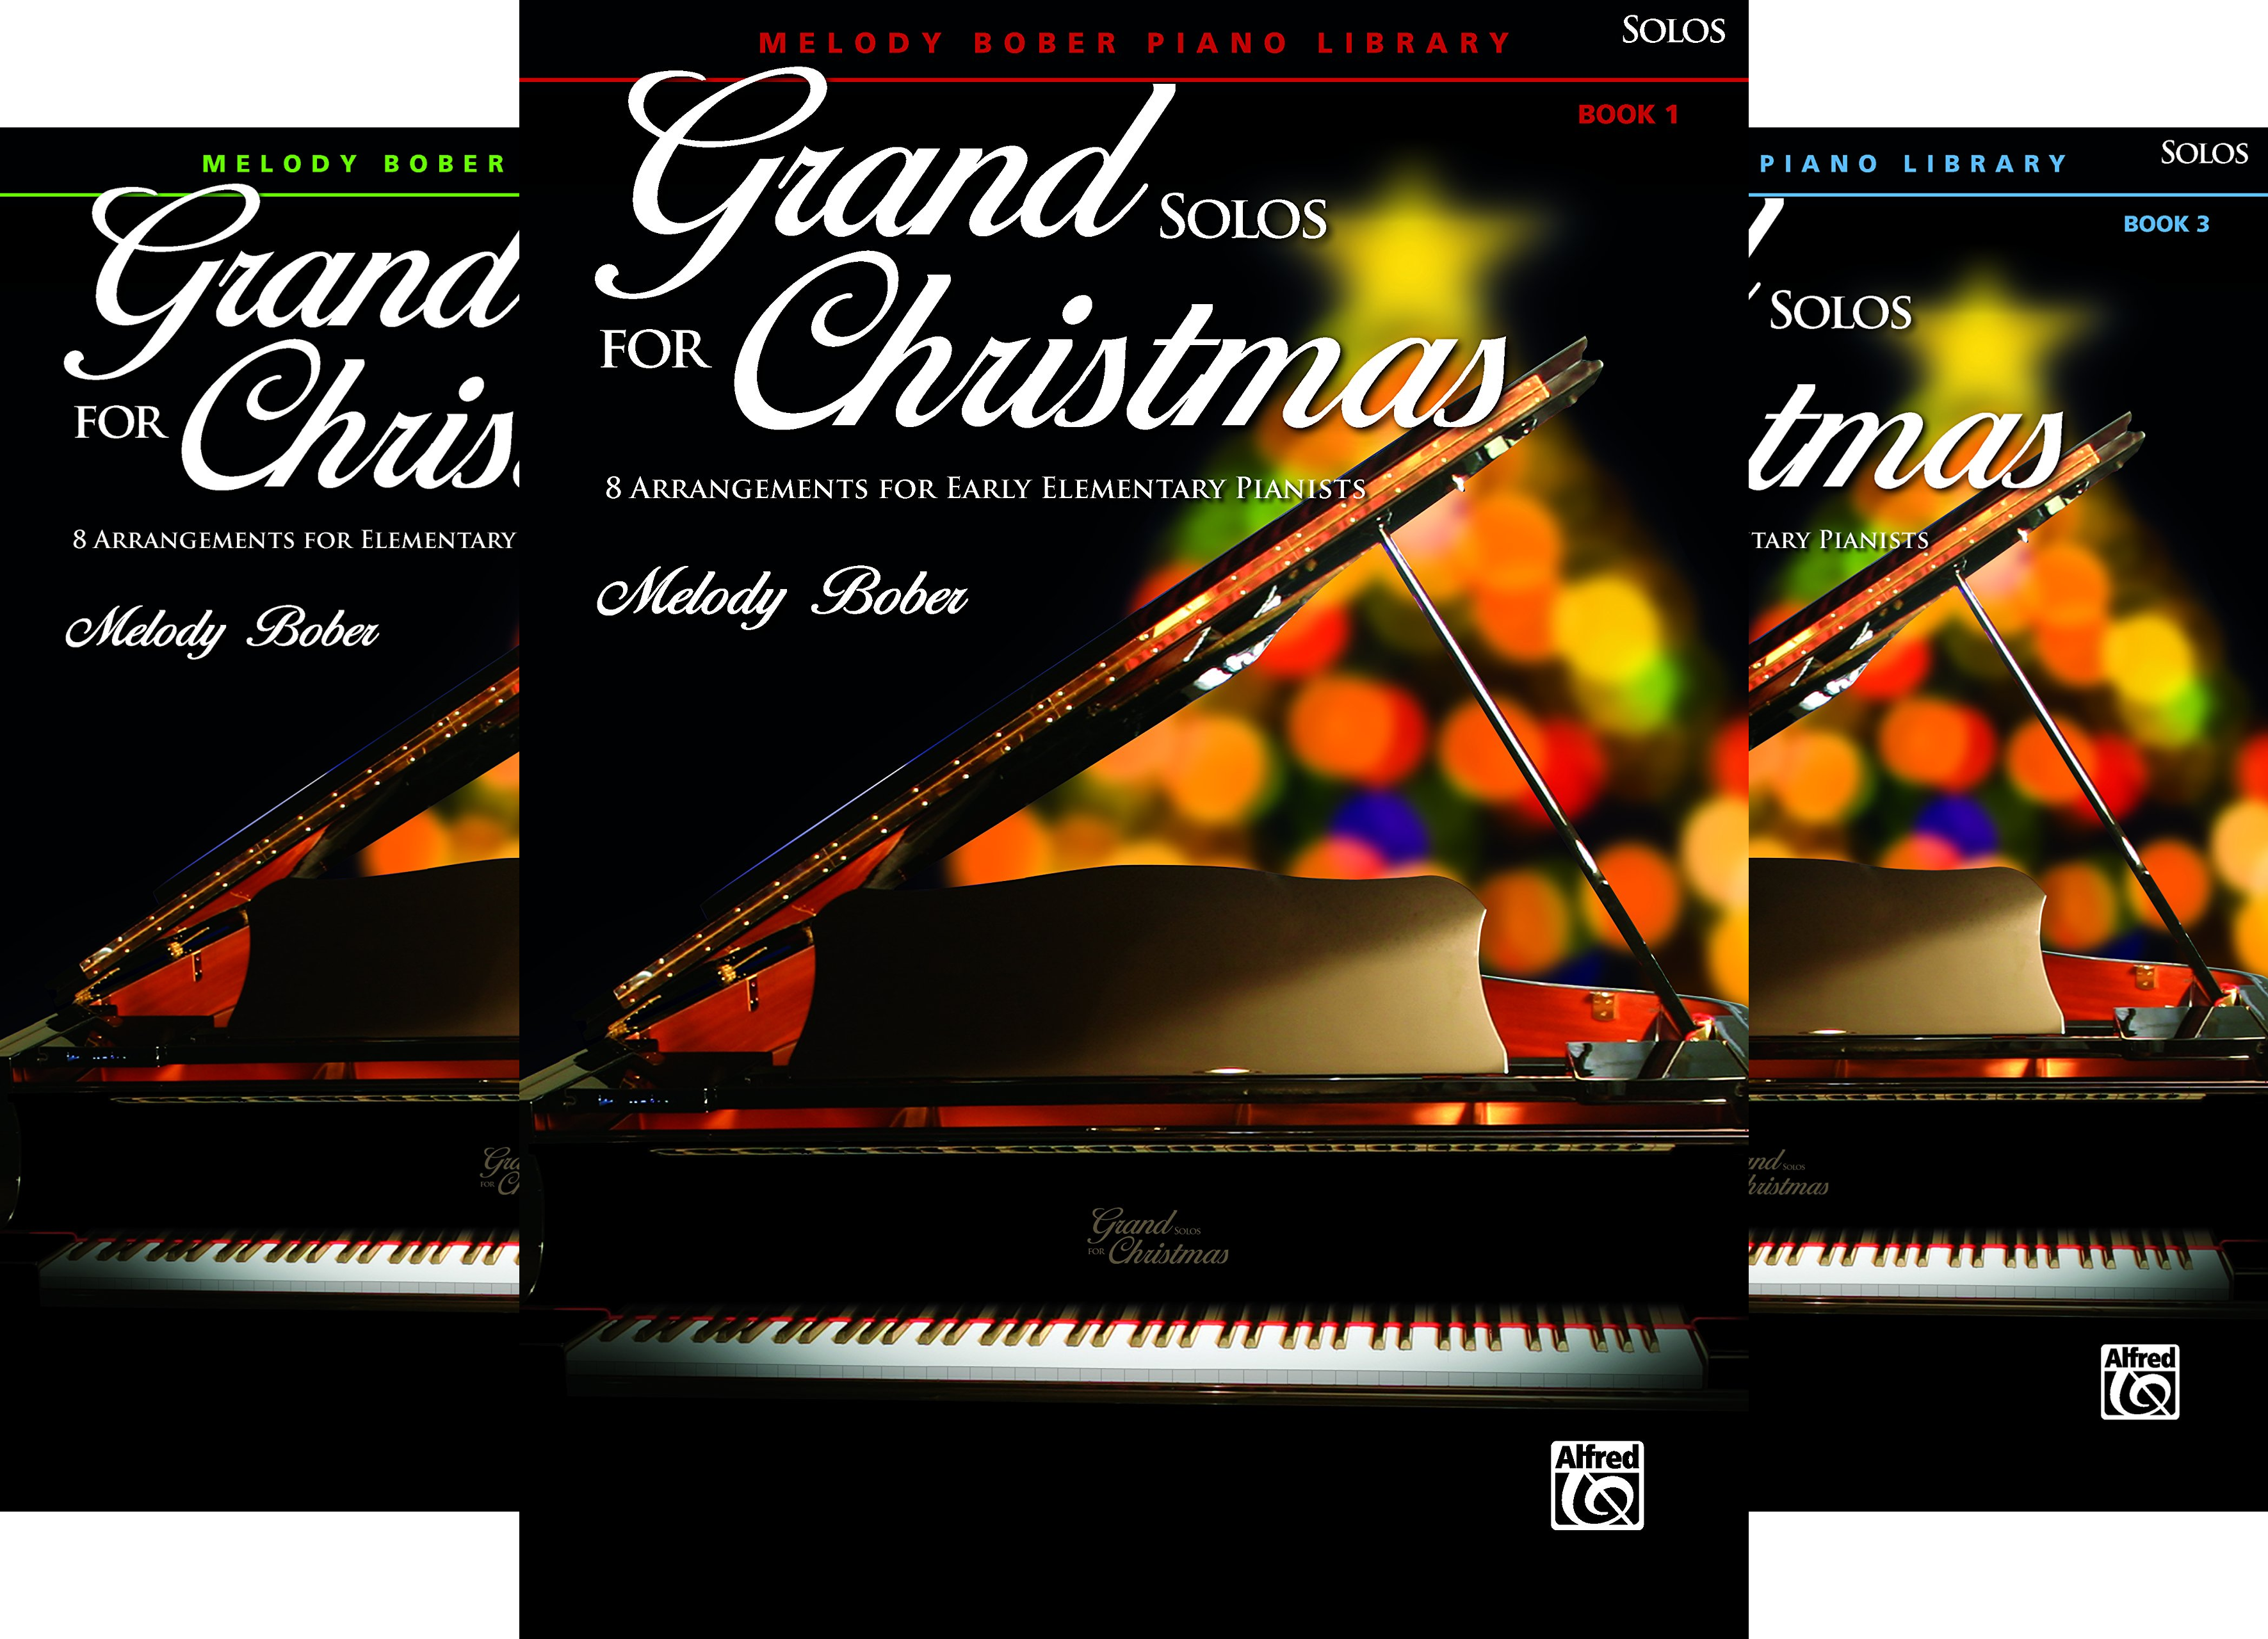 Grand Solos for Piano (6 Book Series)